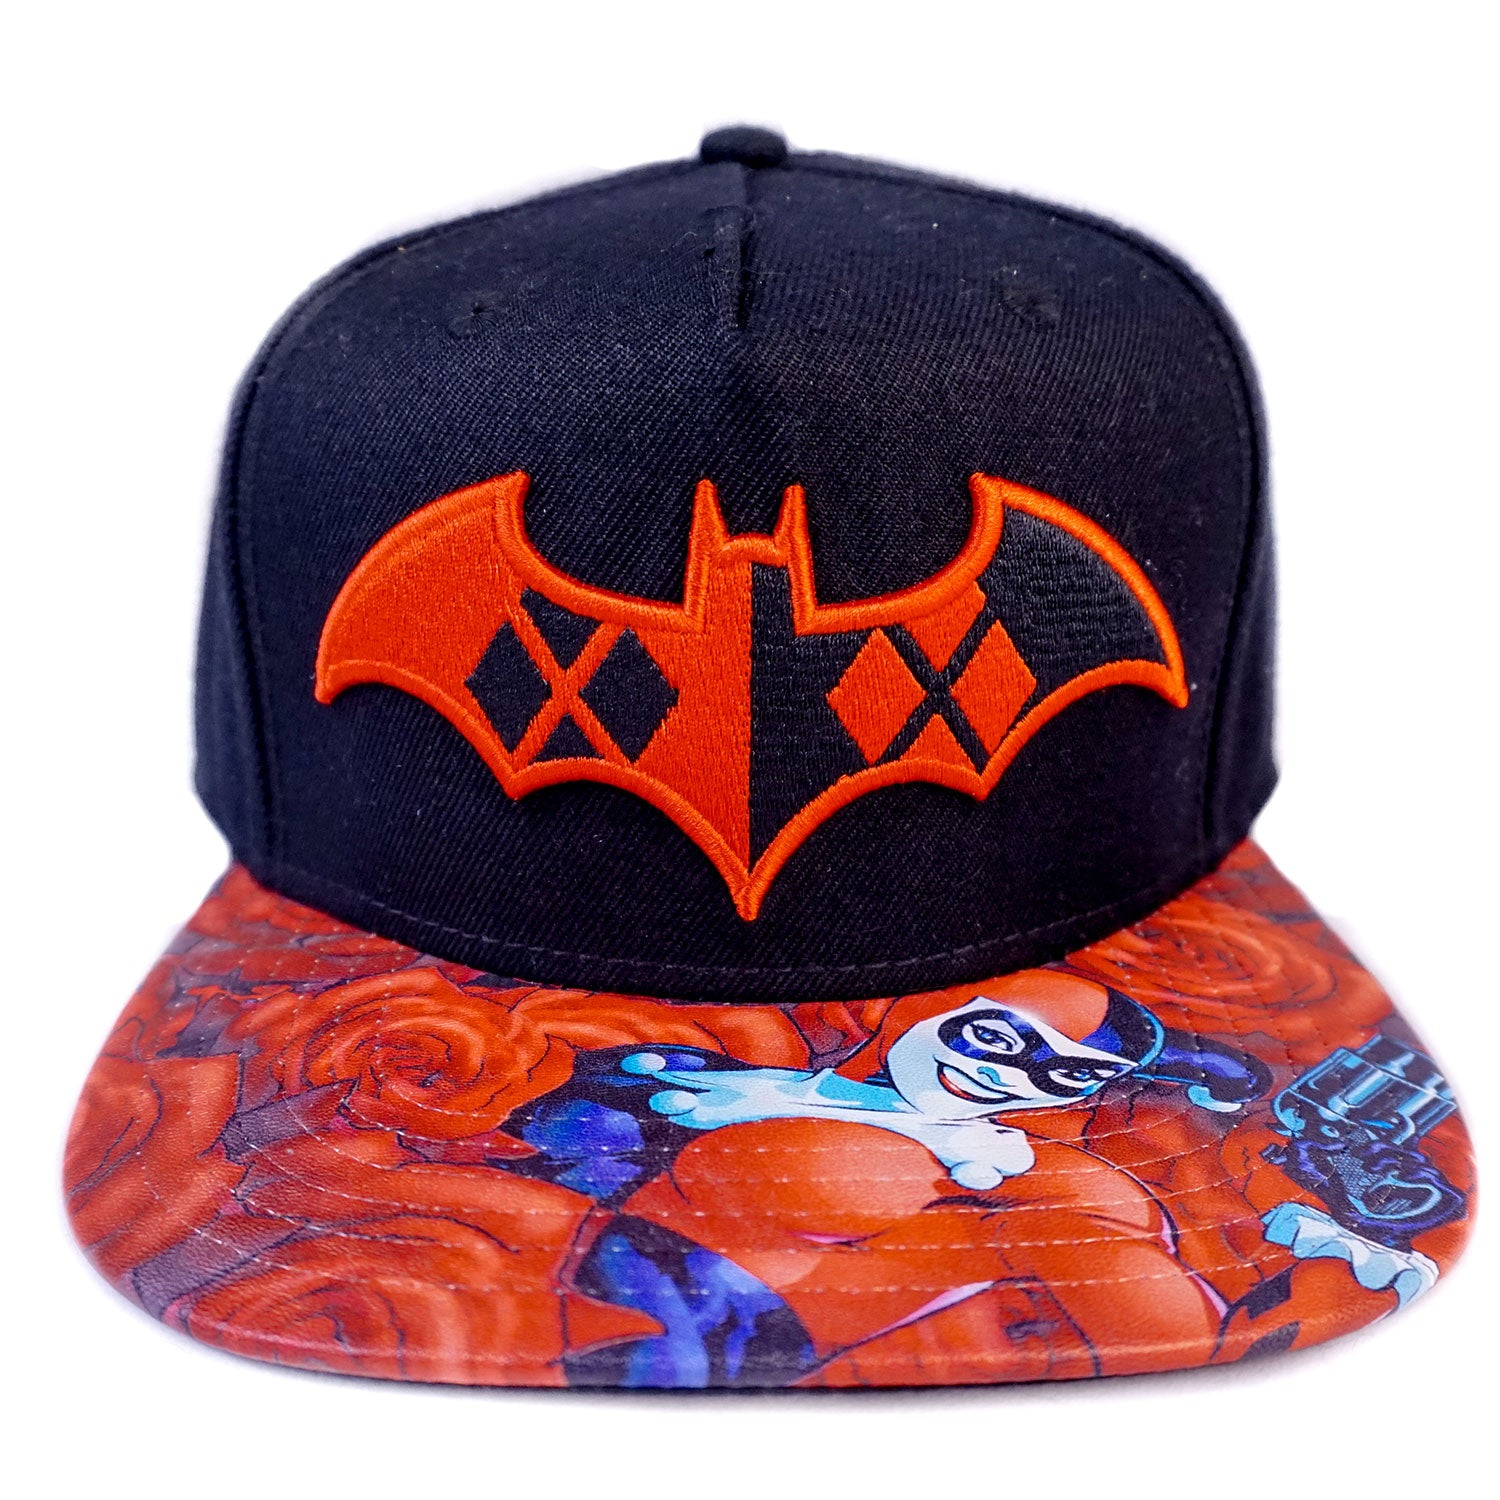 DC Comics - Batman Harley Quinn Sublimated Bill Snapback